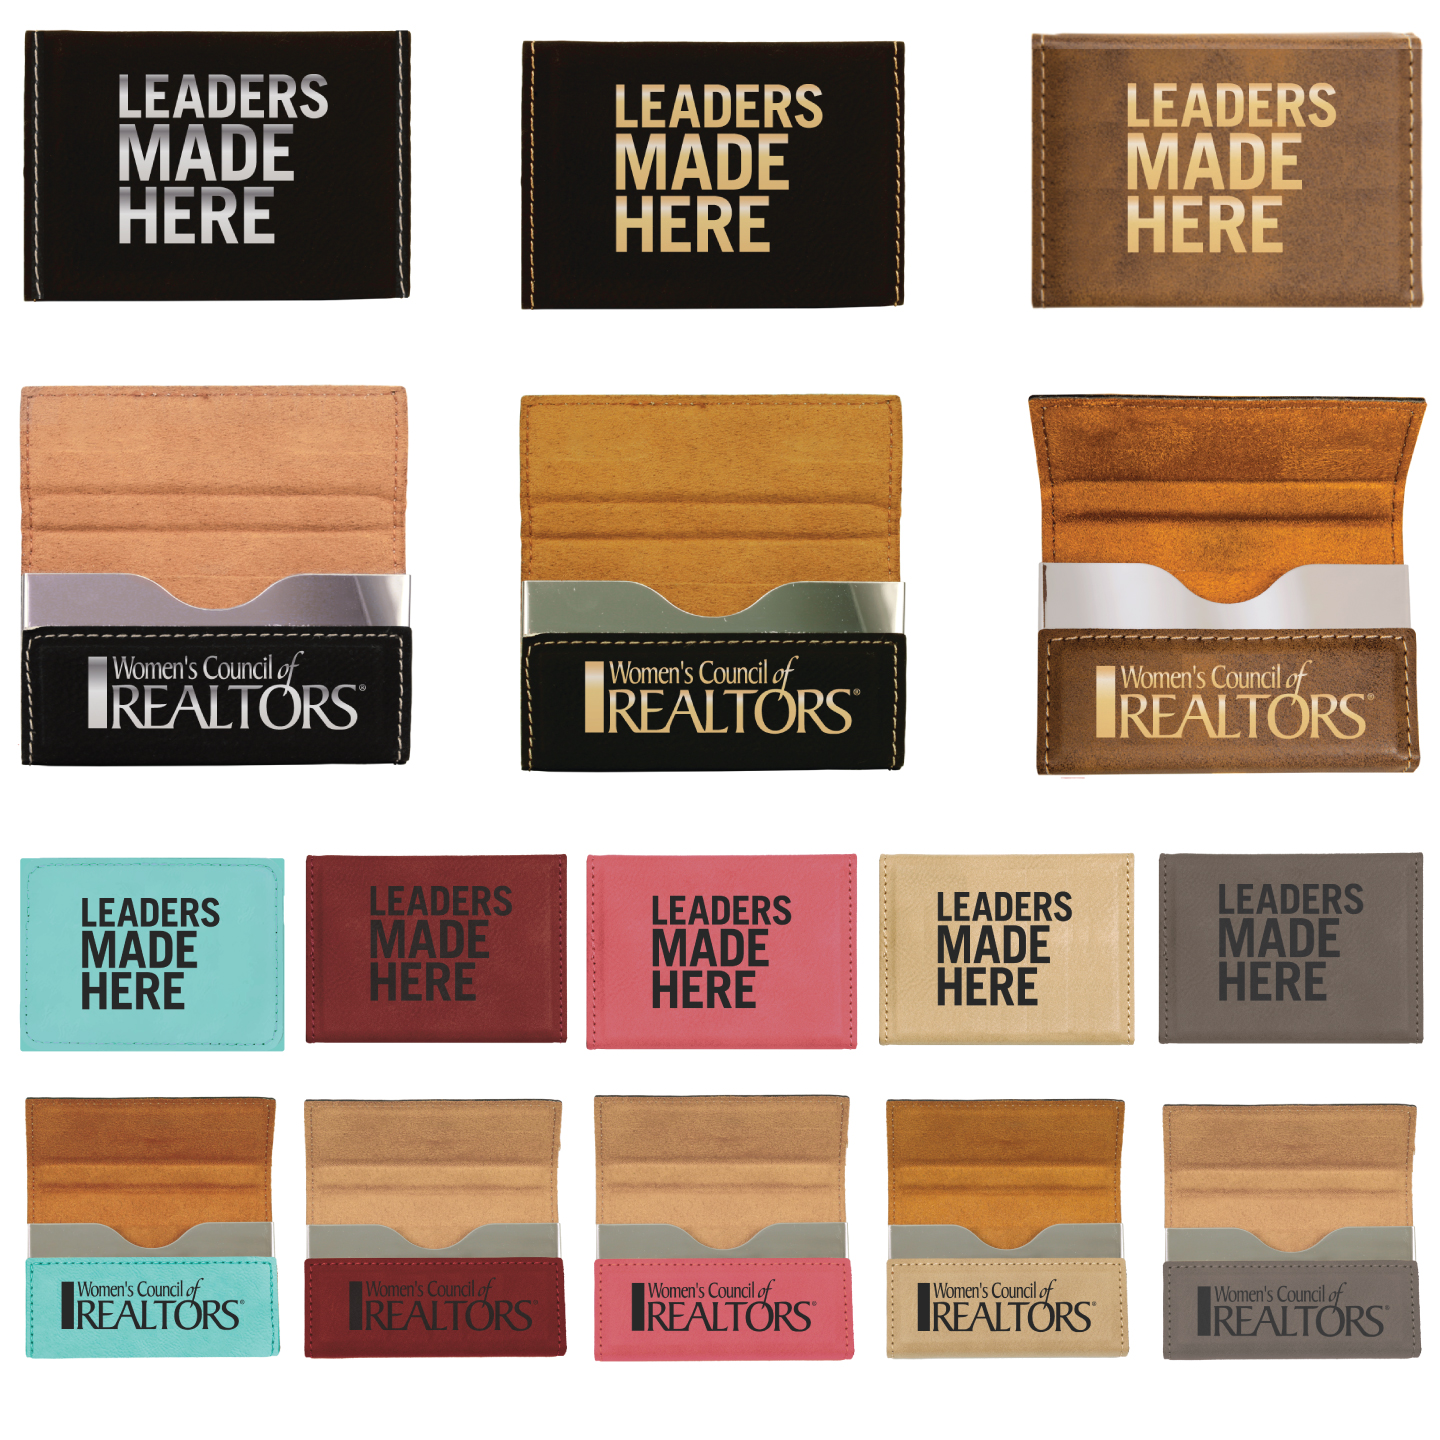 Leaders Made Here Card Case   Business Card Cases, Case, Office, Organizer, Leather, Gift, Give-away, Classy, Leaders, Leader, Network